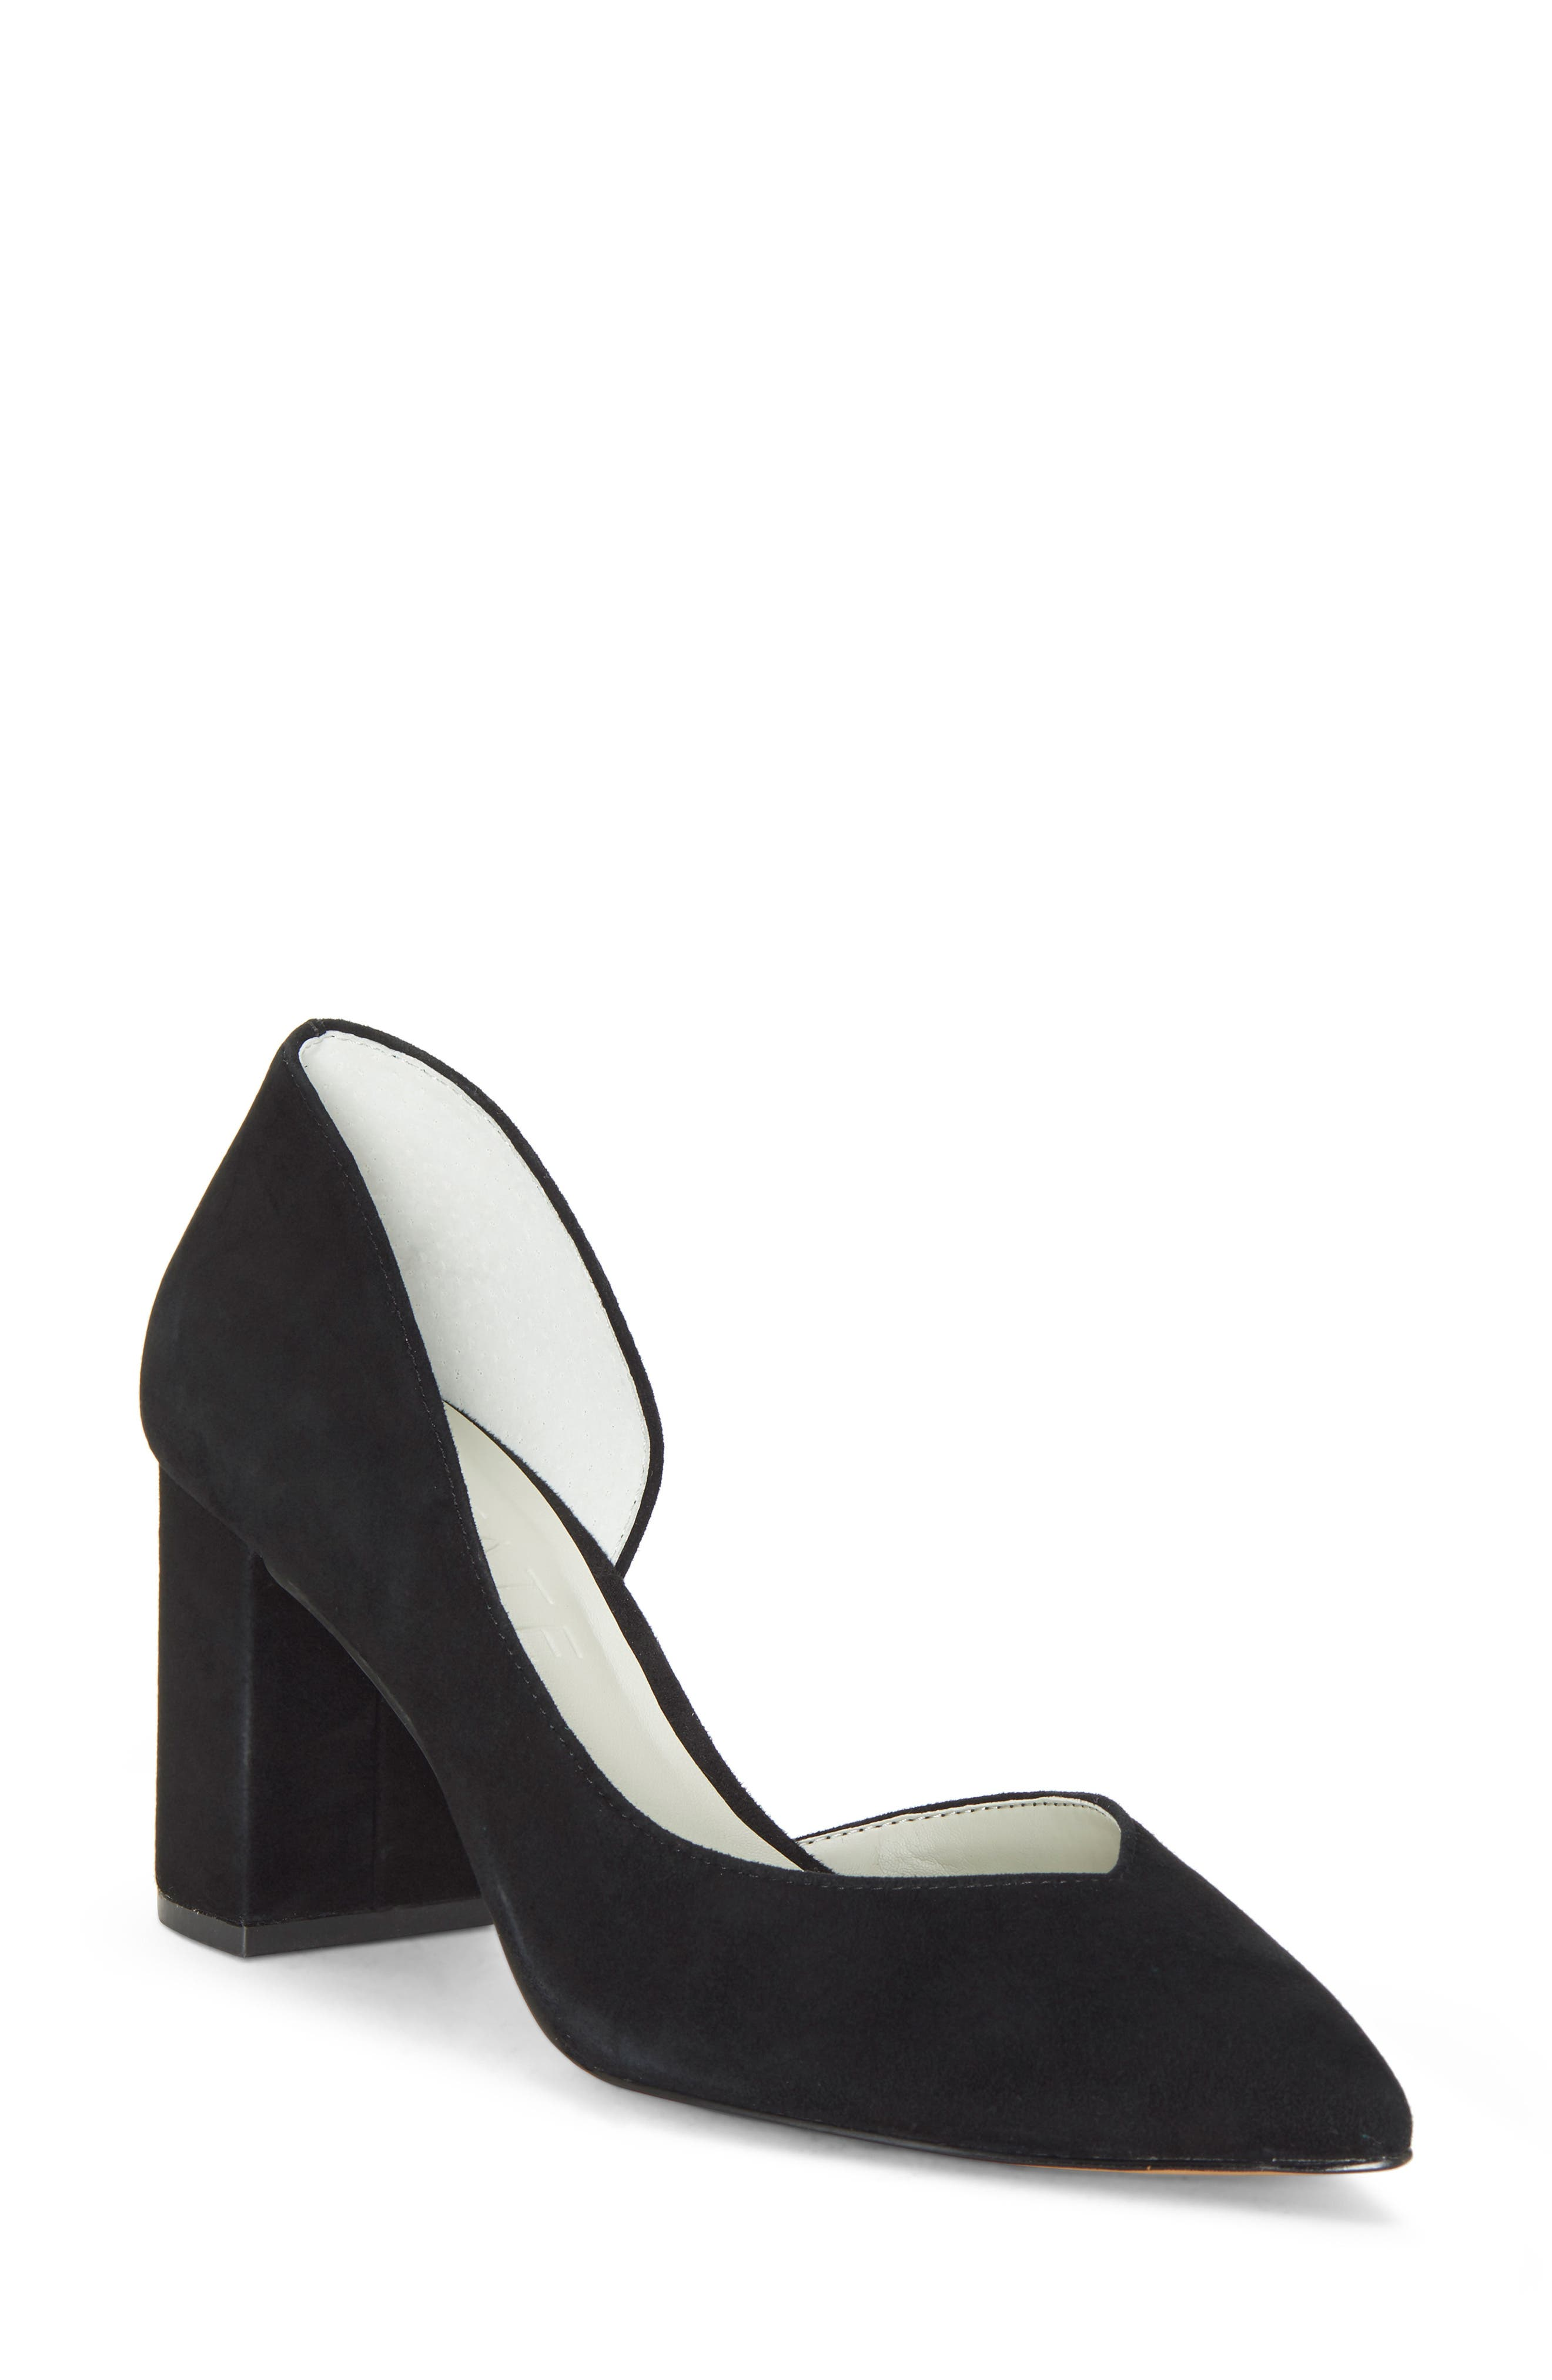 Sisteen Half d'Orsay Pump,                             Main thumbnail 1, color,                             BLACK SUEDE